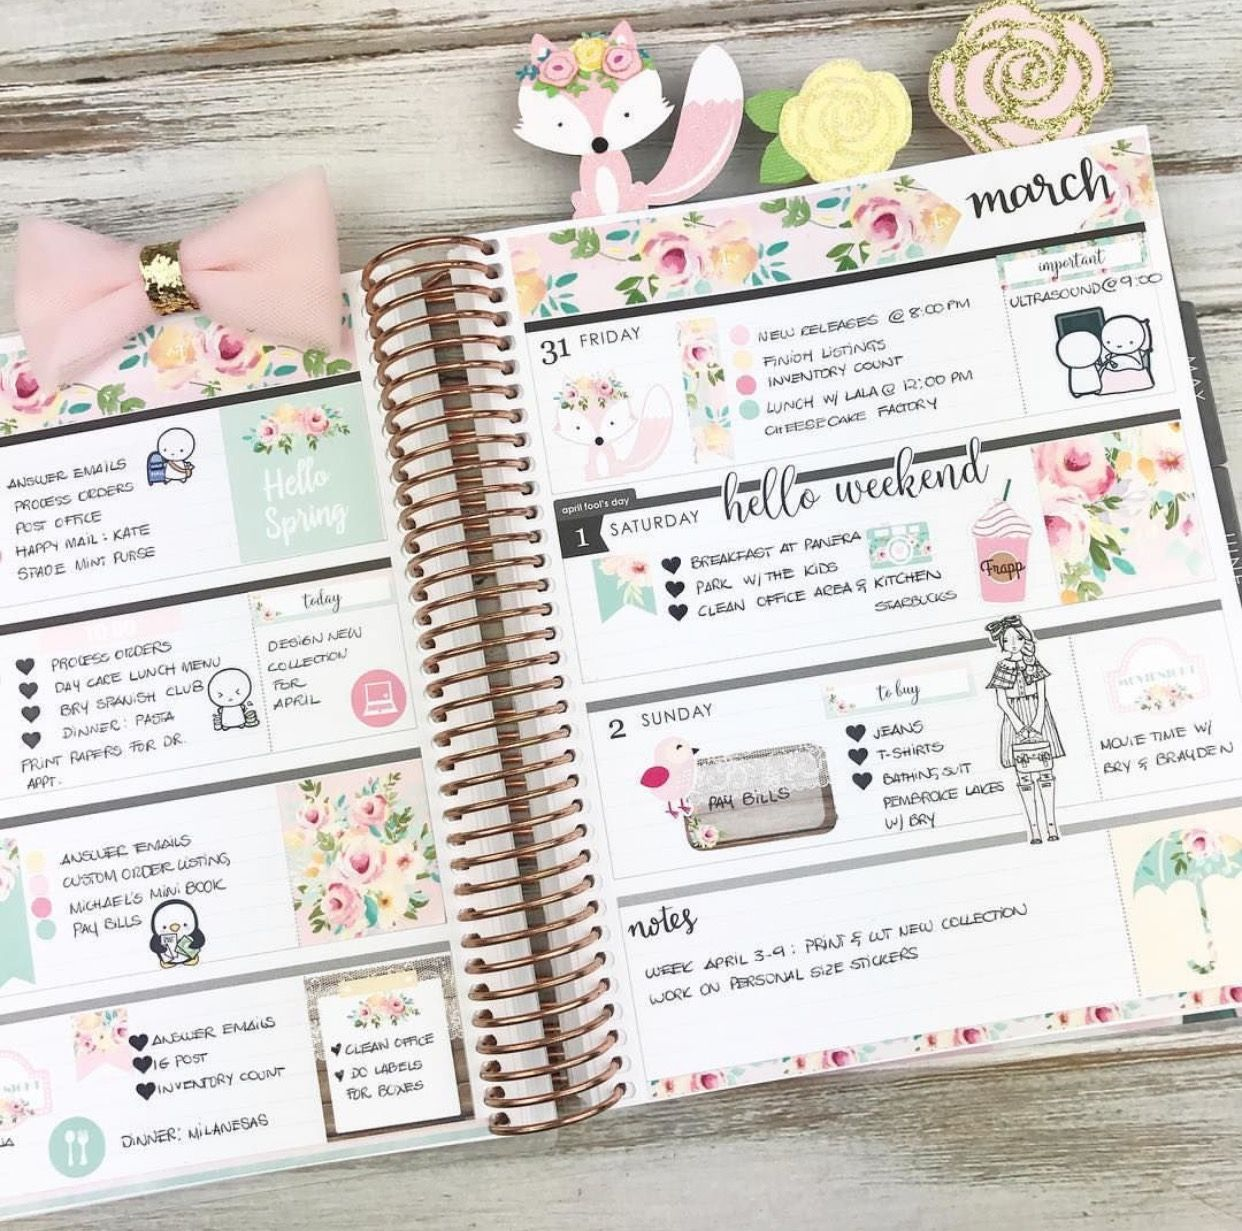 Second half in my horizontal Erin Condren Life Planner using our Hello Spring Kit  #plannergirl #plannerlayout #erincondren #lifeplanner #eclphorizontal